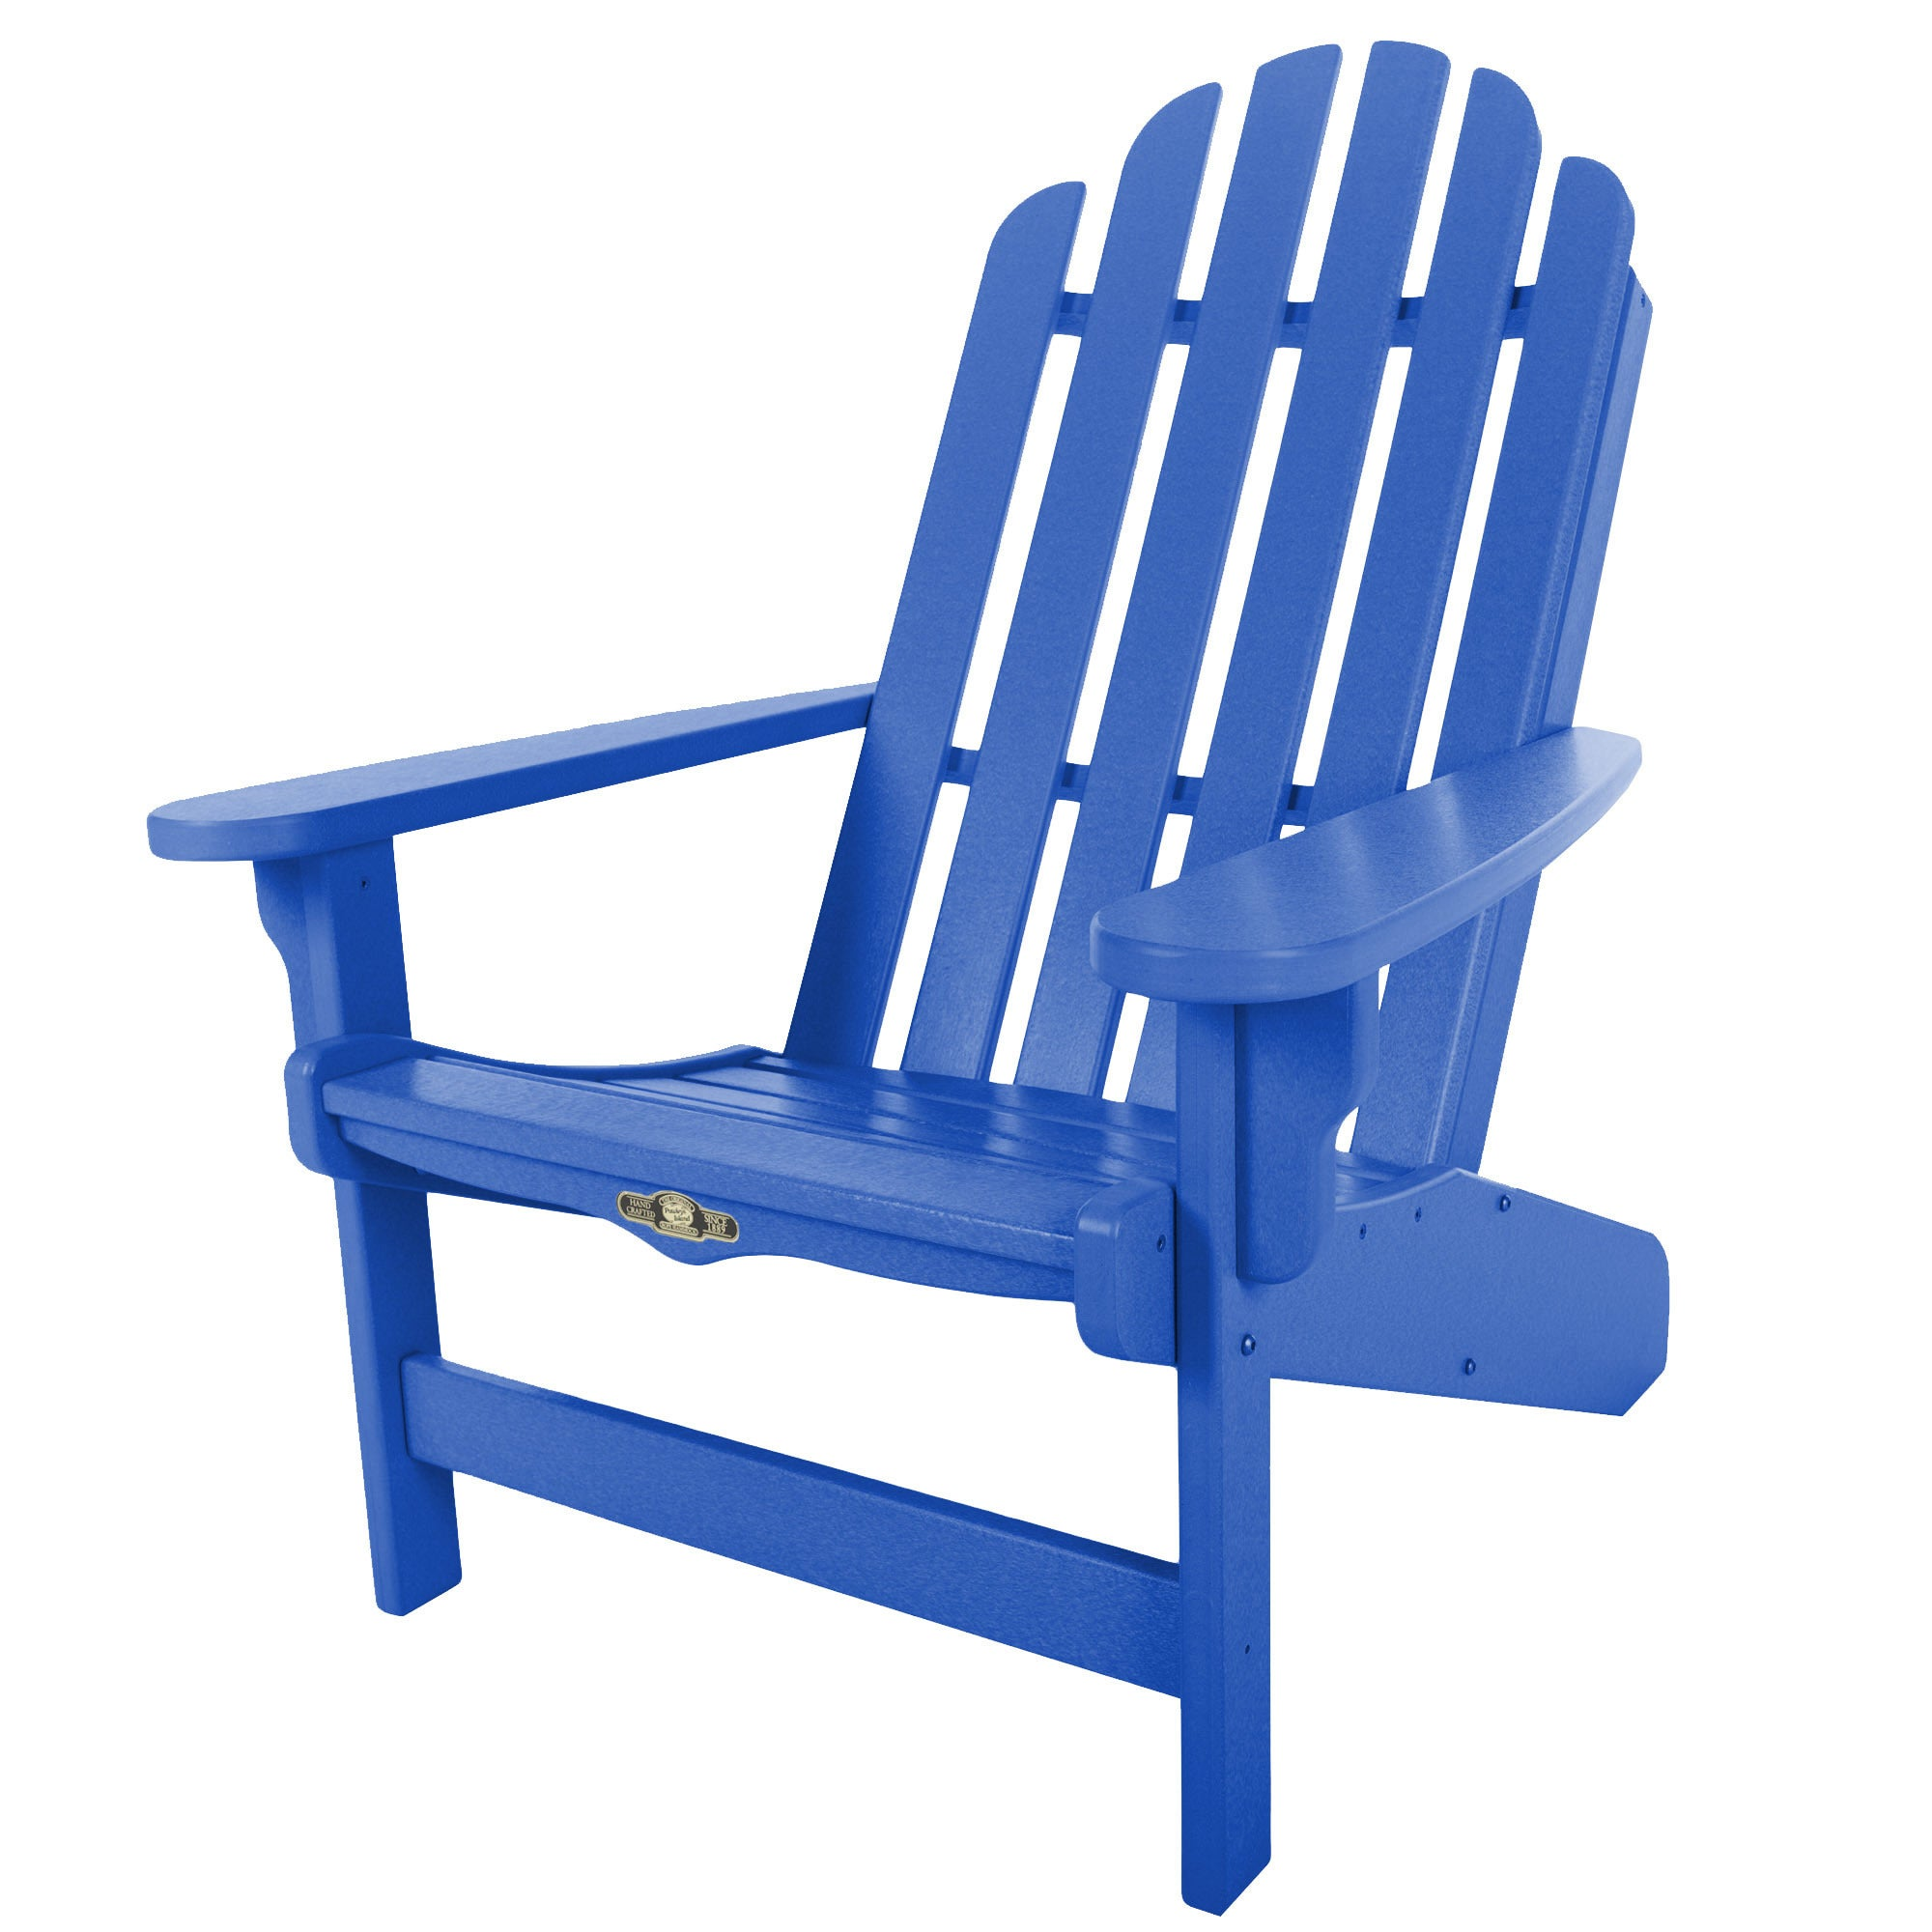 Essentials Blue Adirondack Chair (Blue), Size Single, Pat...